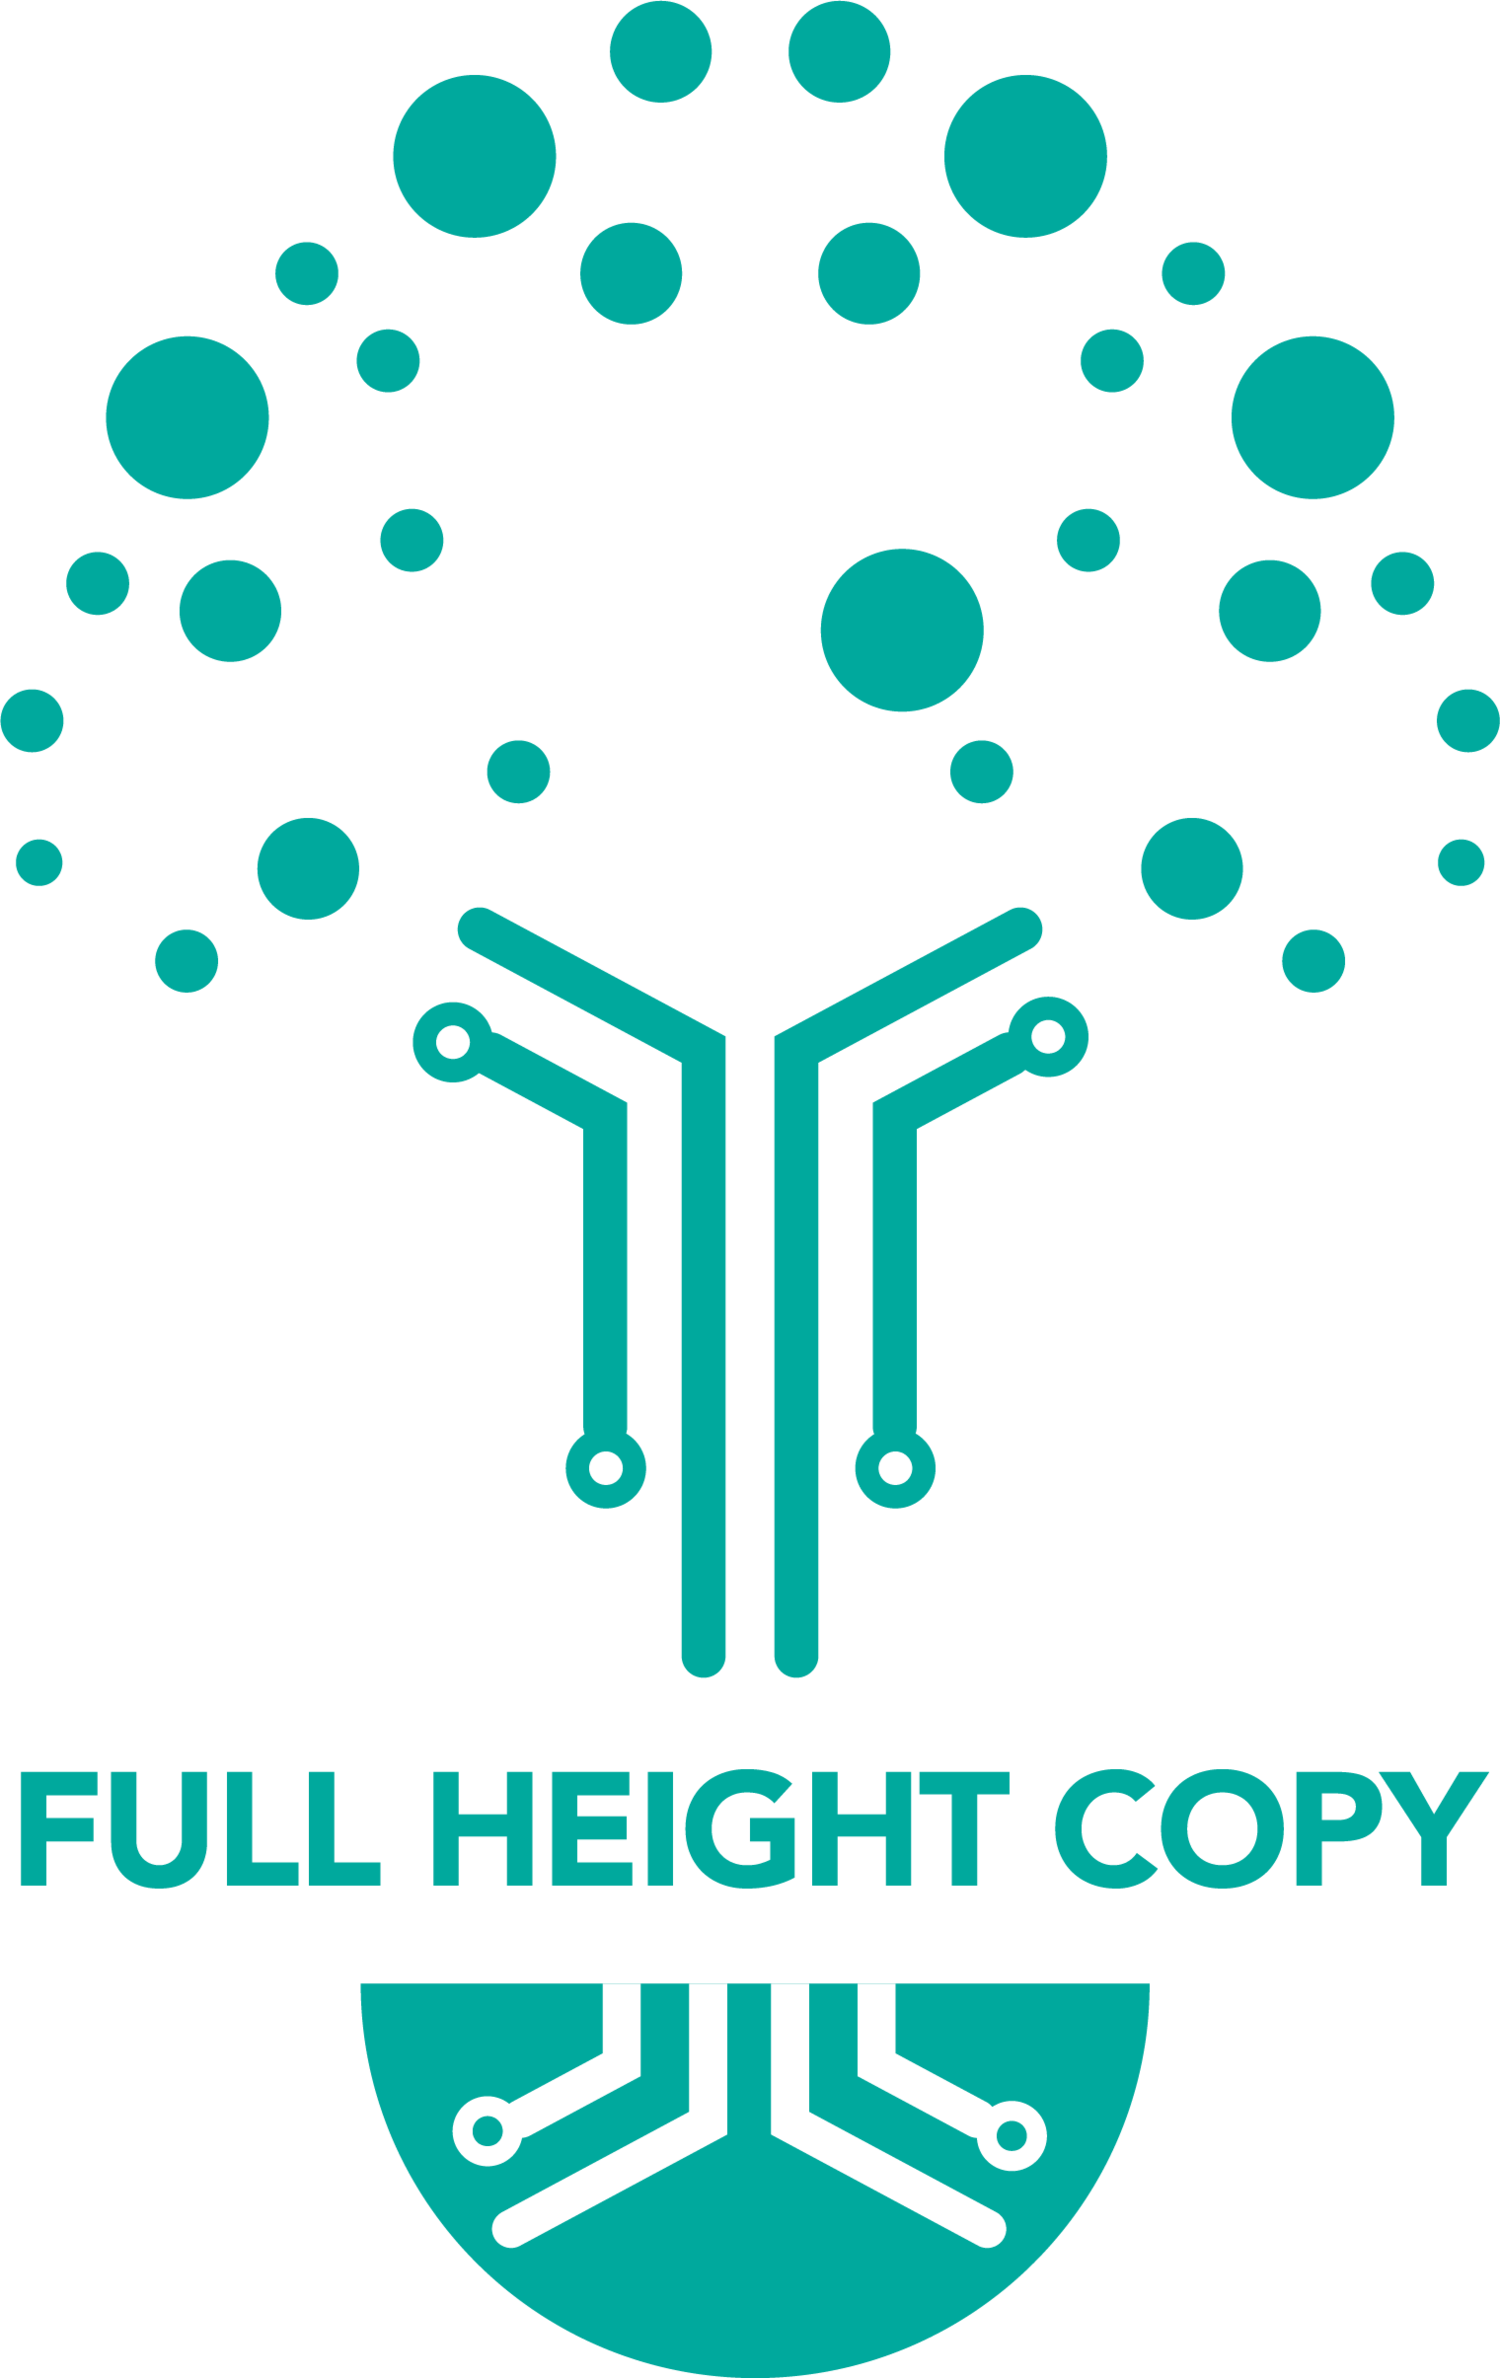 Full Height Copy - Copywriting Services